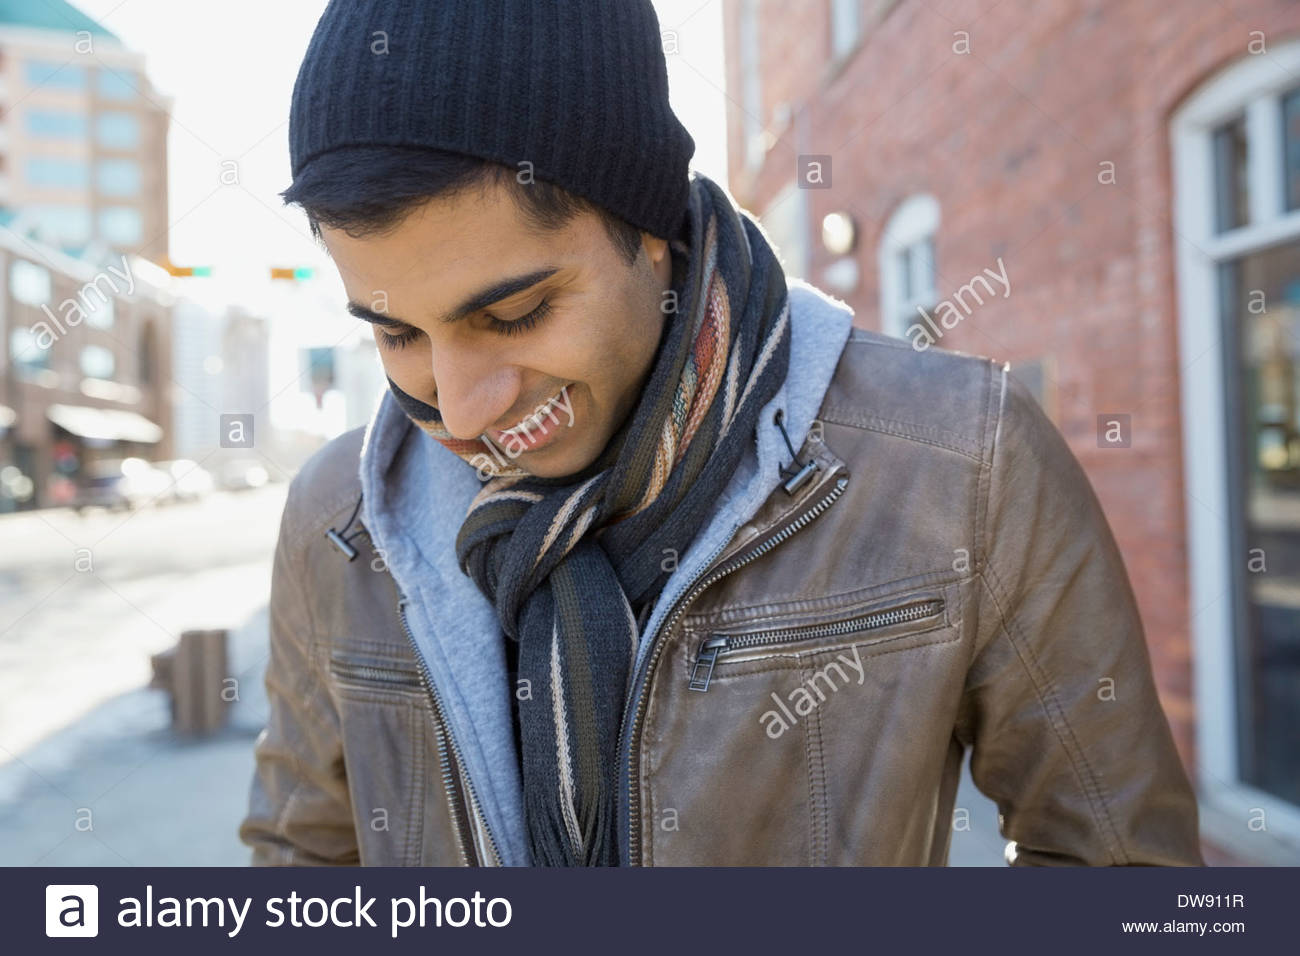 Smiling man standing outdoors looking down - Stock Image